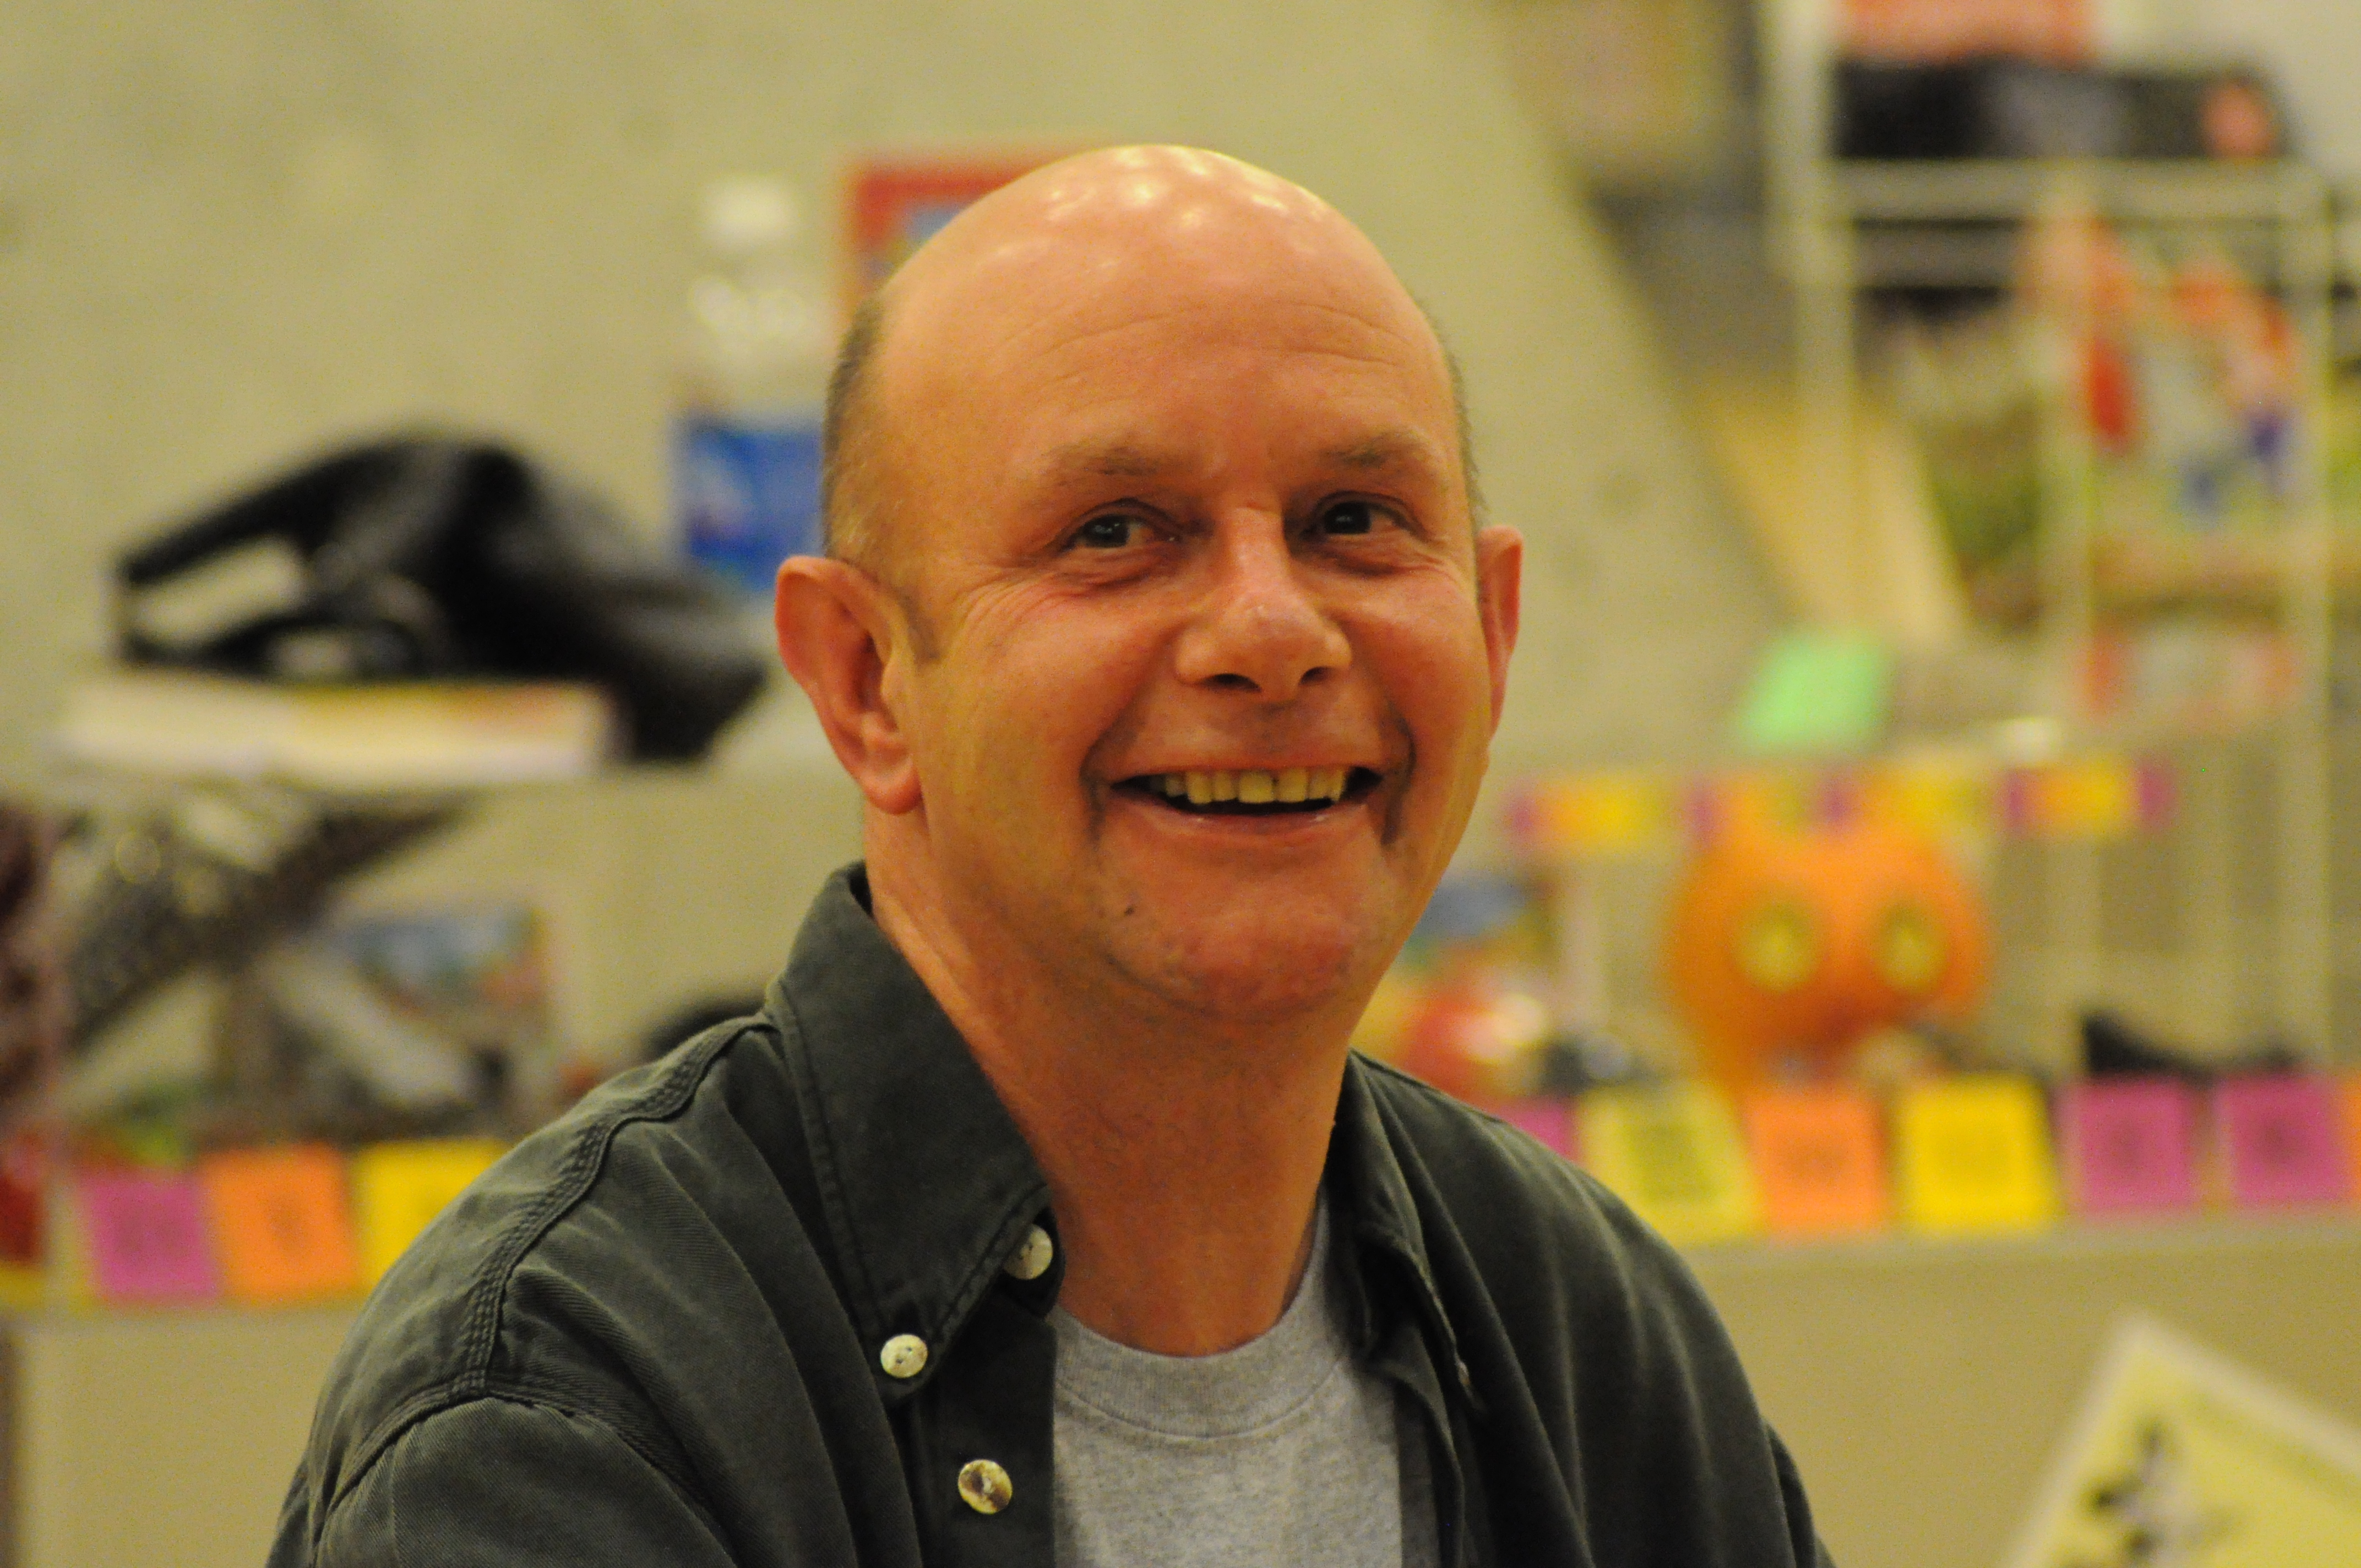 The 61-year old son of father Sir Derek Peter Hornby and mother Margaret Audrey Nick Hornby in 2018 photo. Nick Hornby earned a  million dollar salary - leaving the net worth at 22 million in 2018